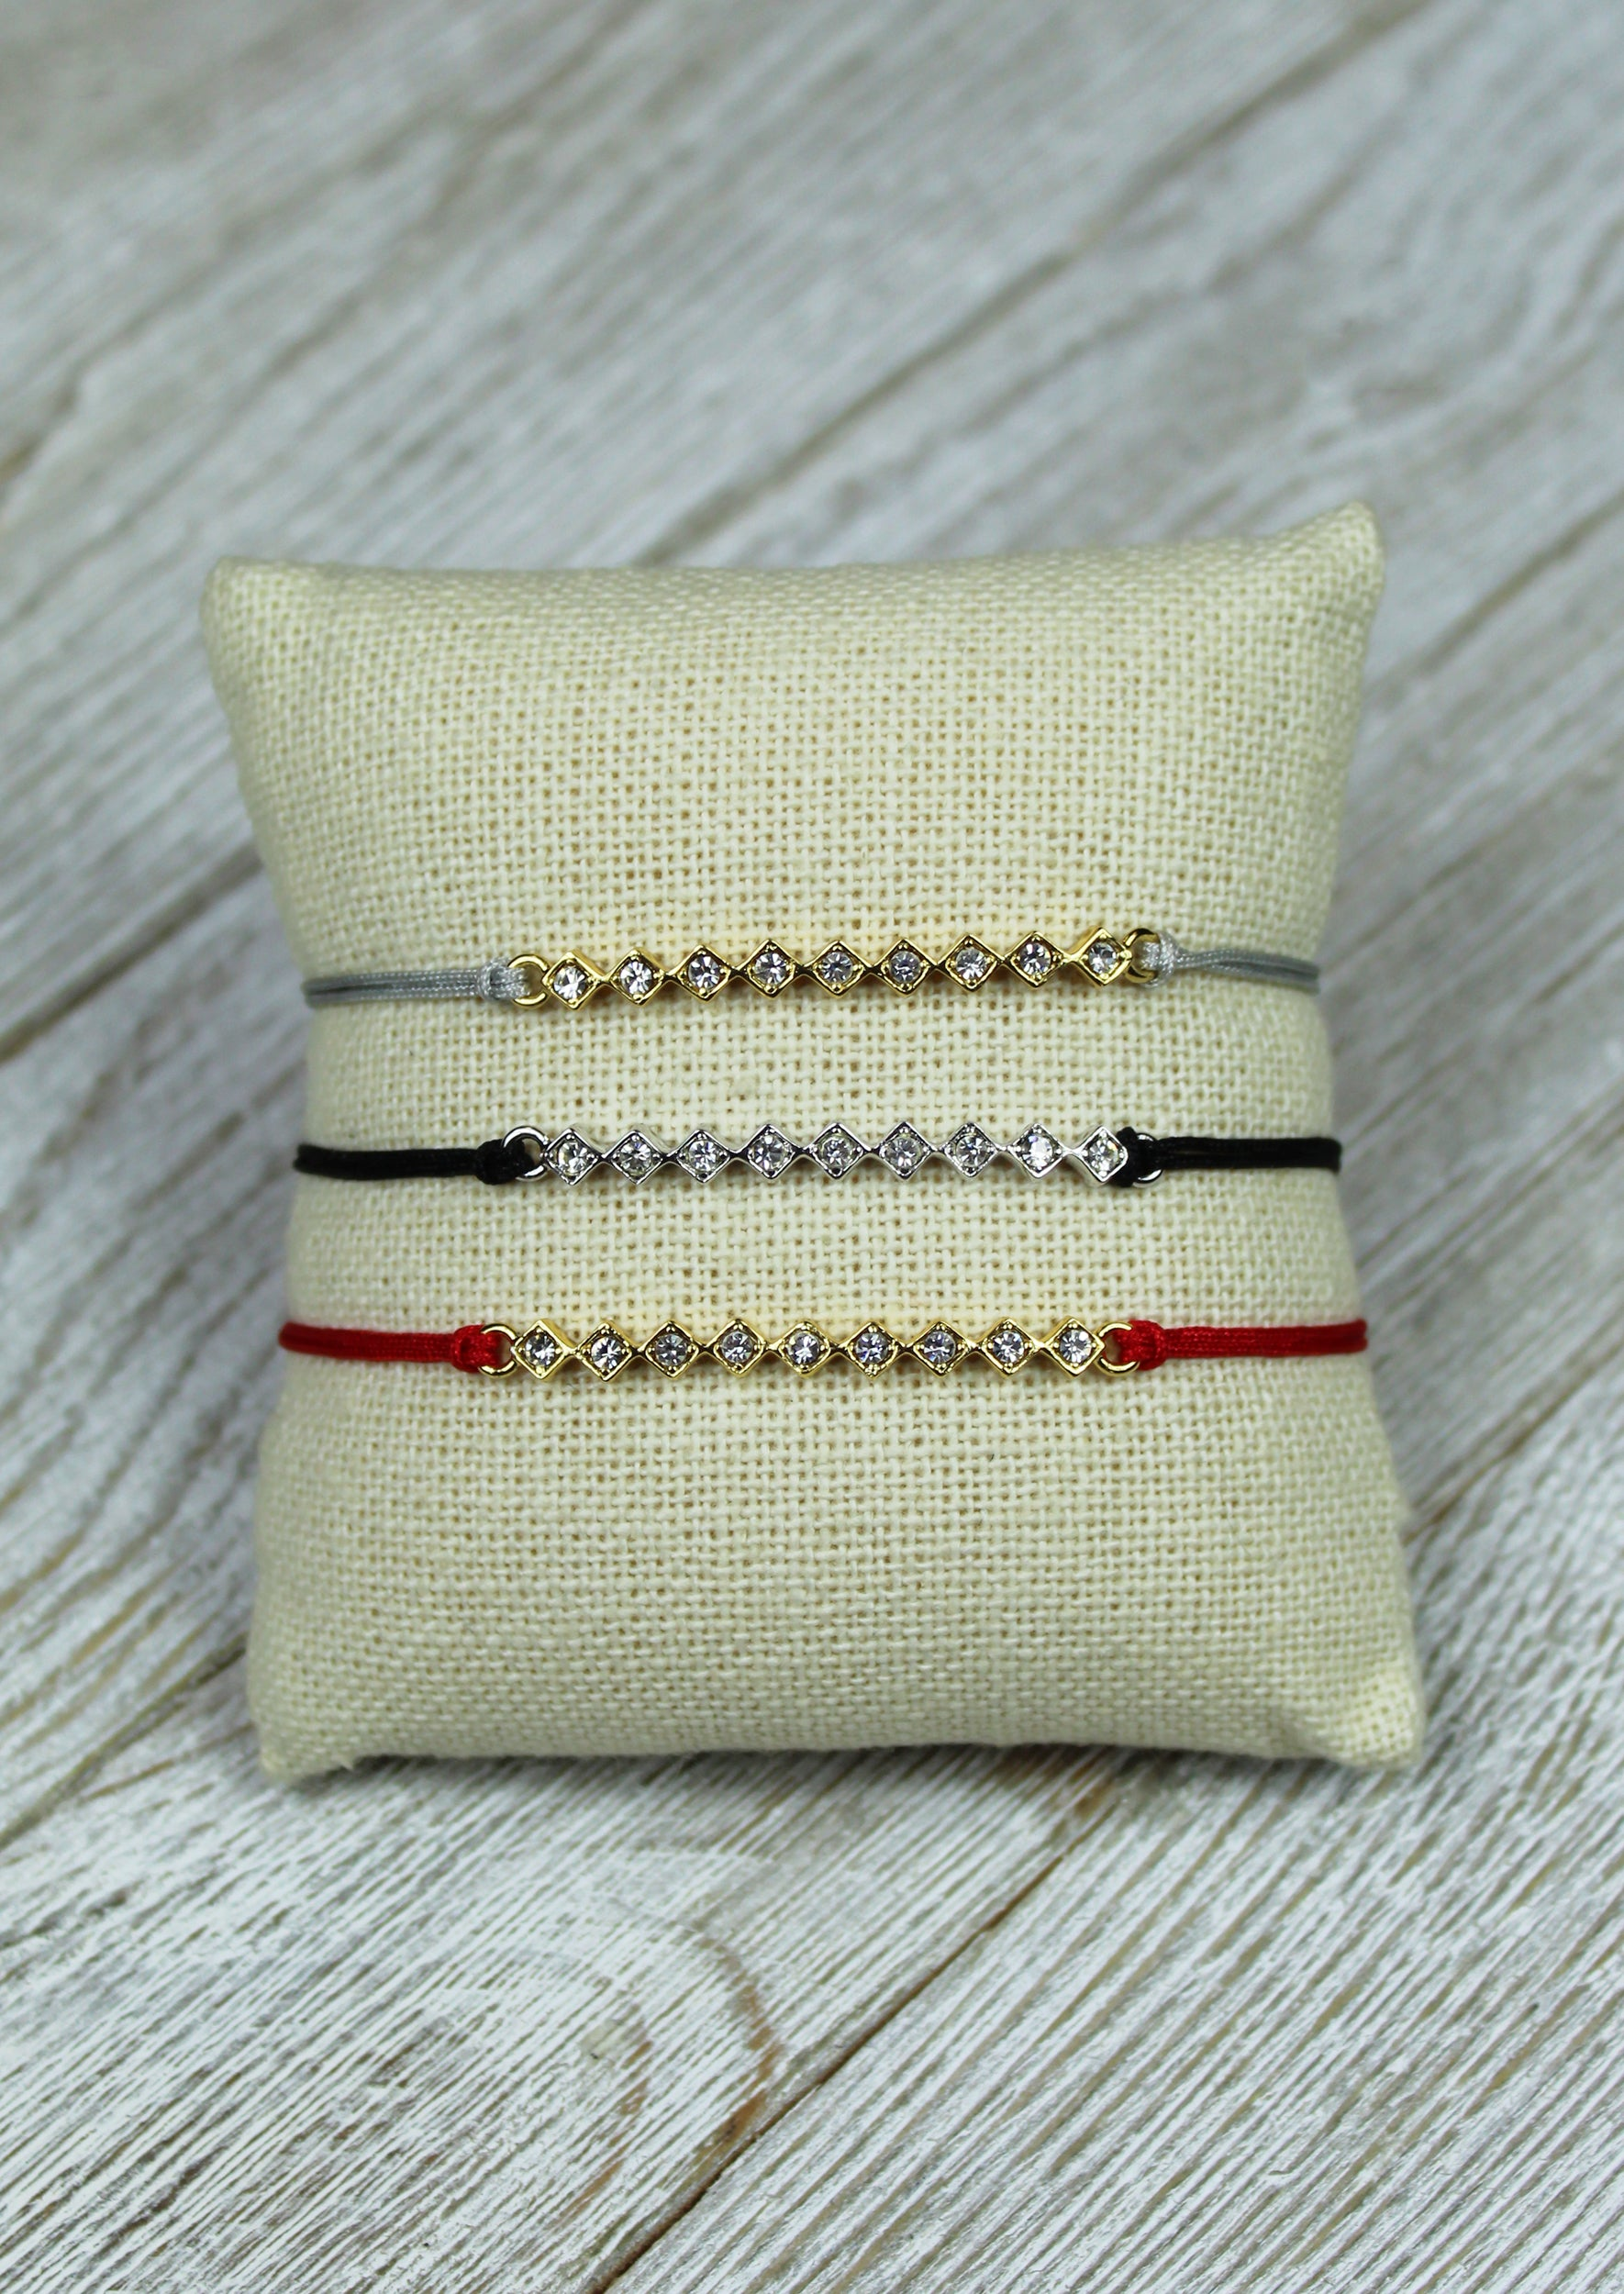 Tulum Braided Bracelets - Jules Smith - 14K Gold Plated - Boho Jewelry